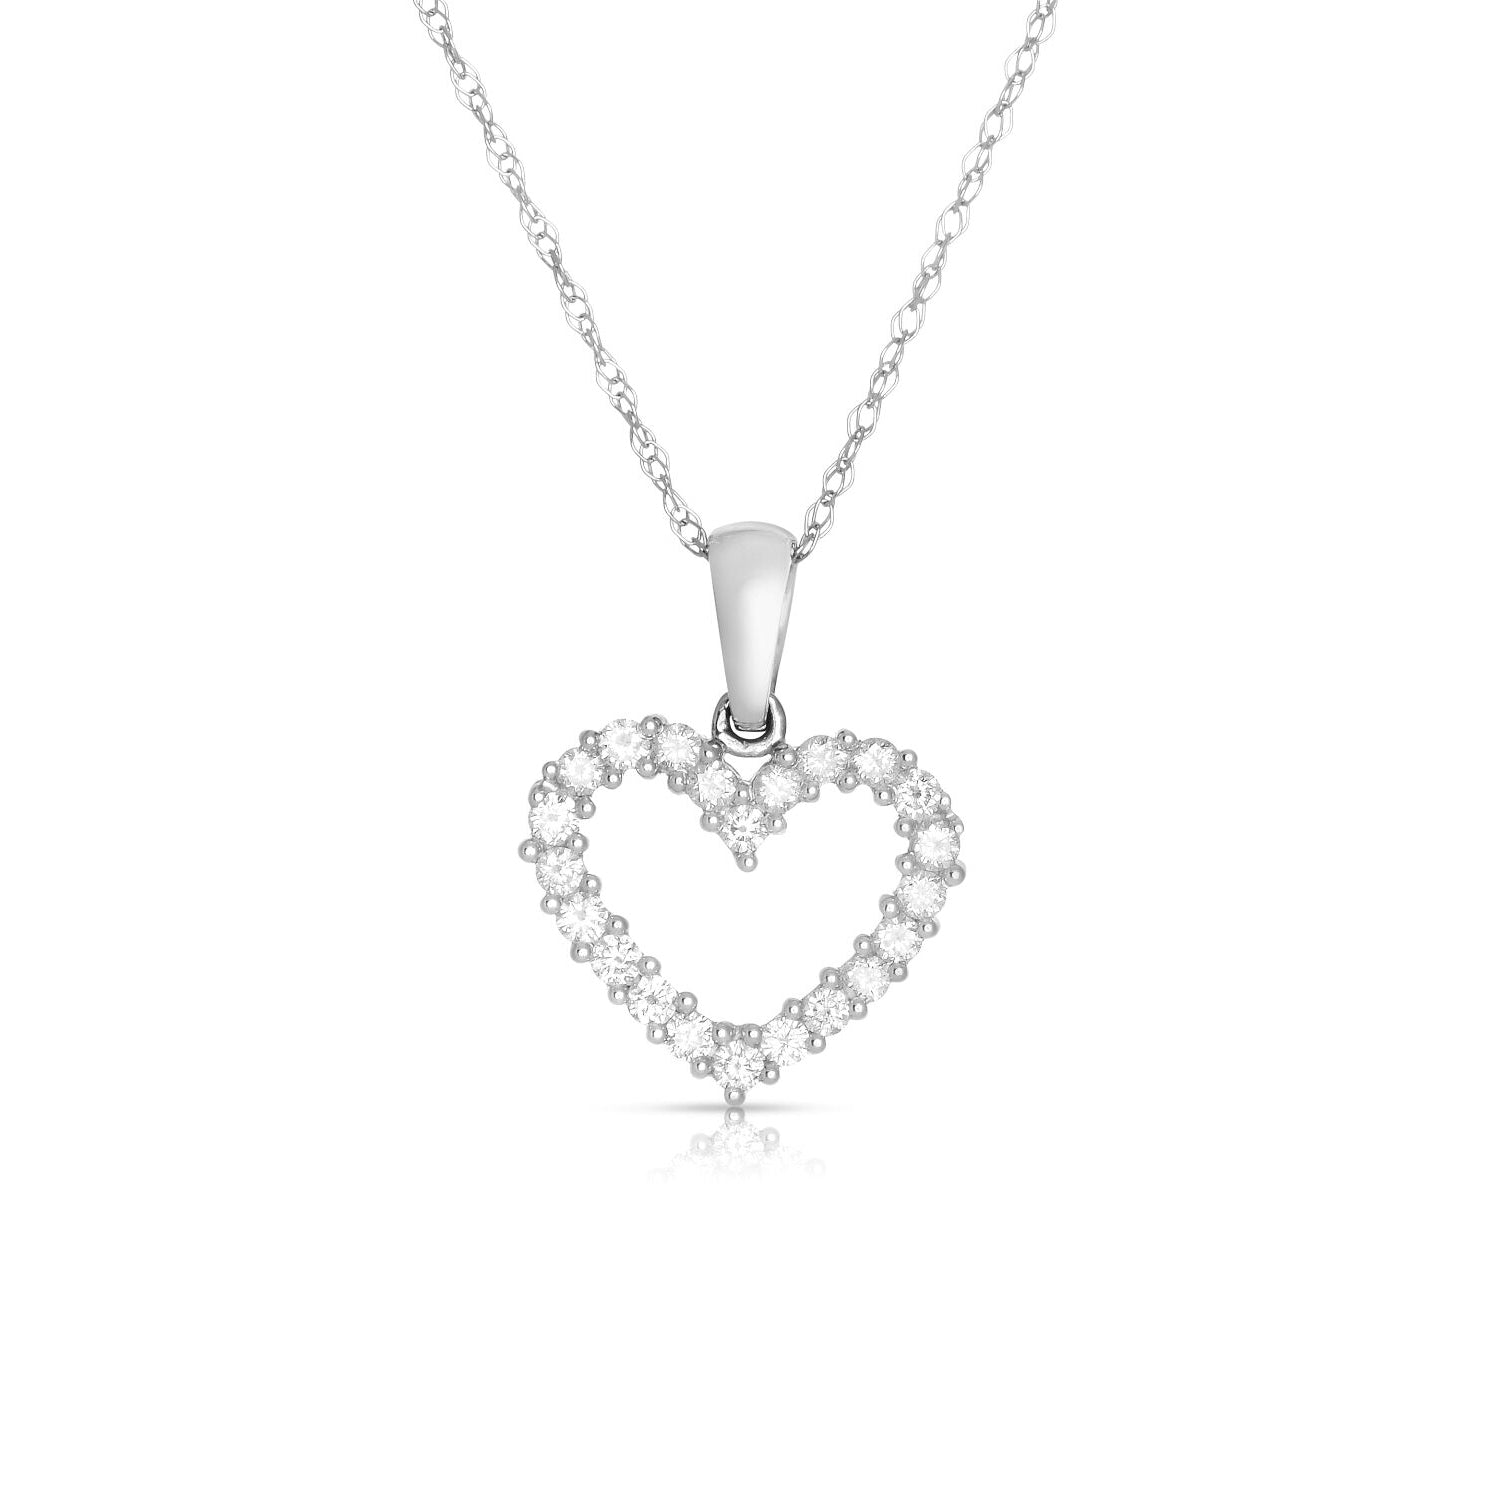 Small Shared Prong Diamond Pendant, 14K White Gold